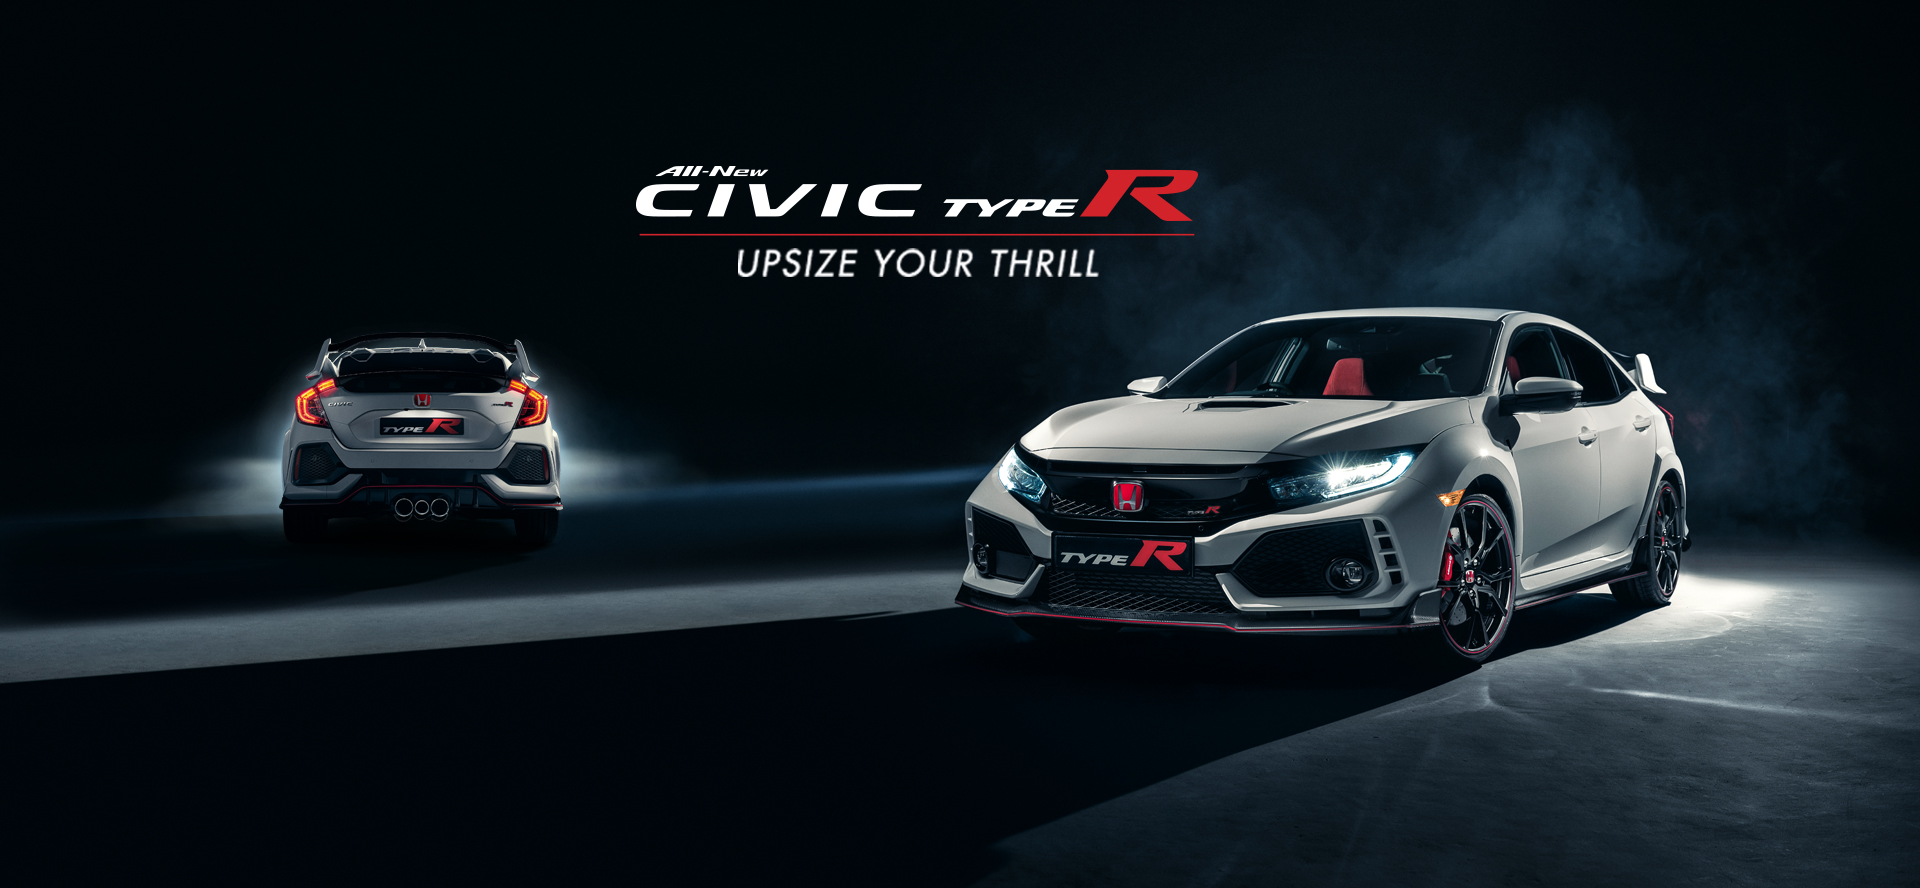 Civic_Type_R_Revised Honda Civic Type R